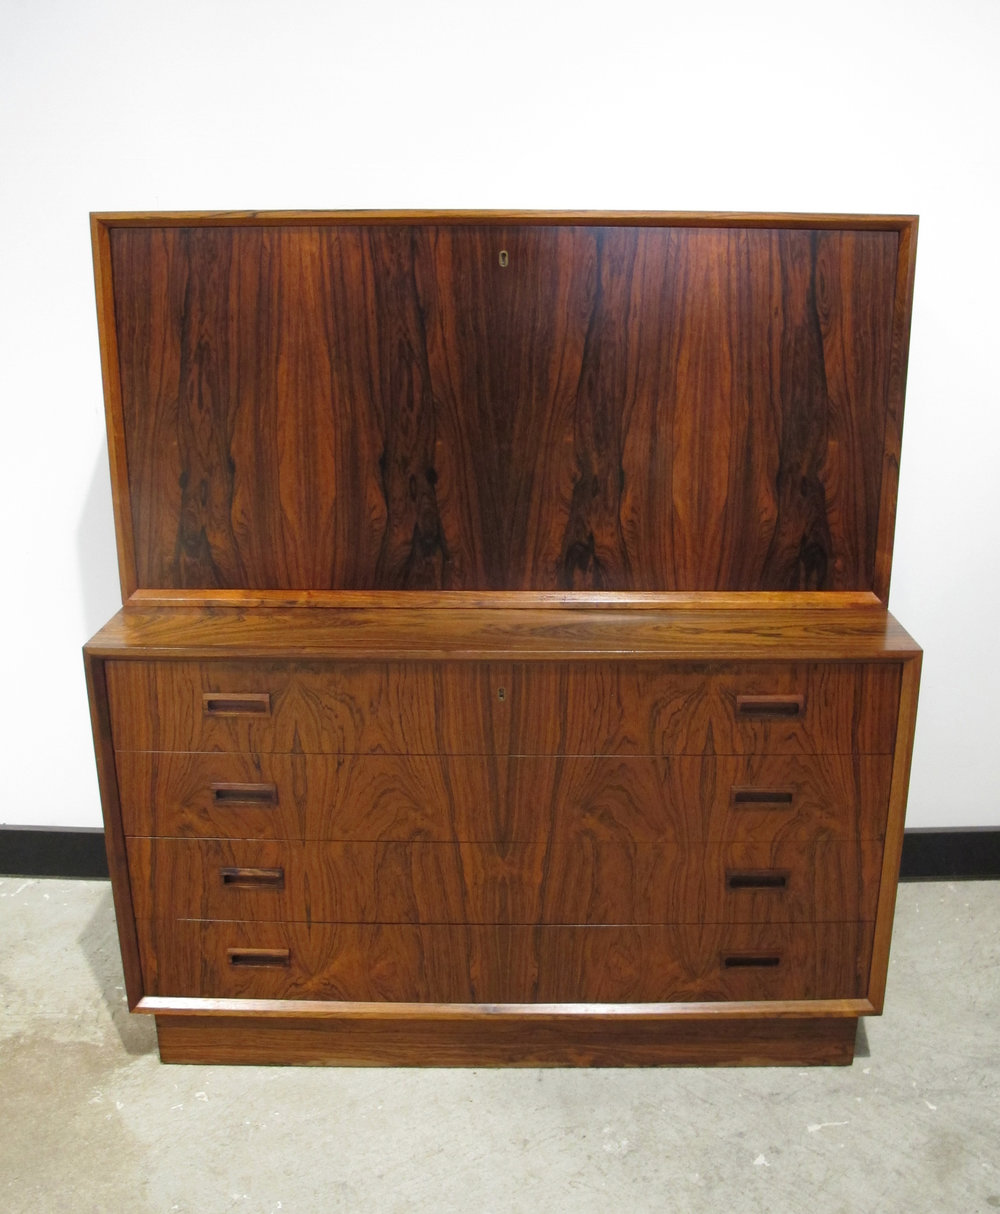 DANISH MODERN ROSEWOOD CHEST OF DRAWERS WITH DROP-DOWN DESK